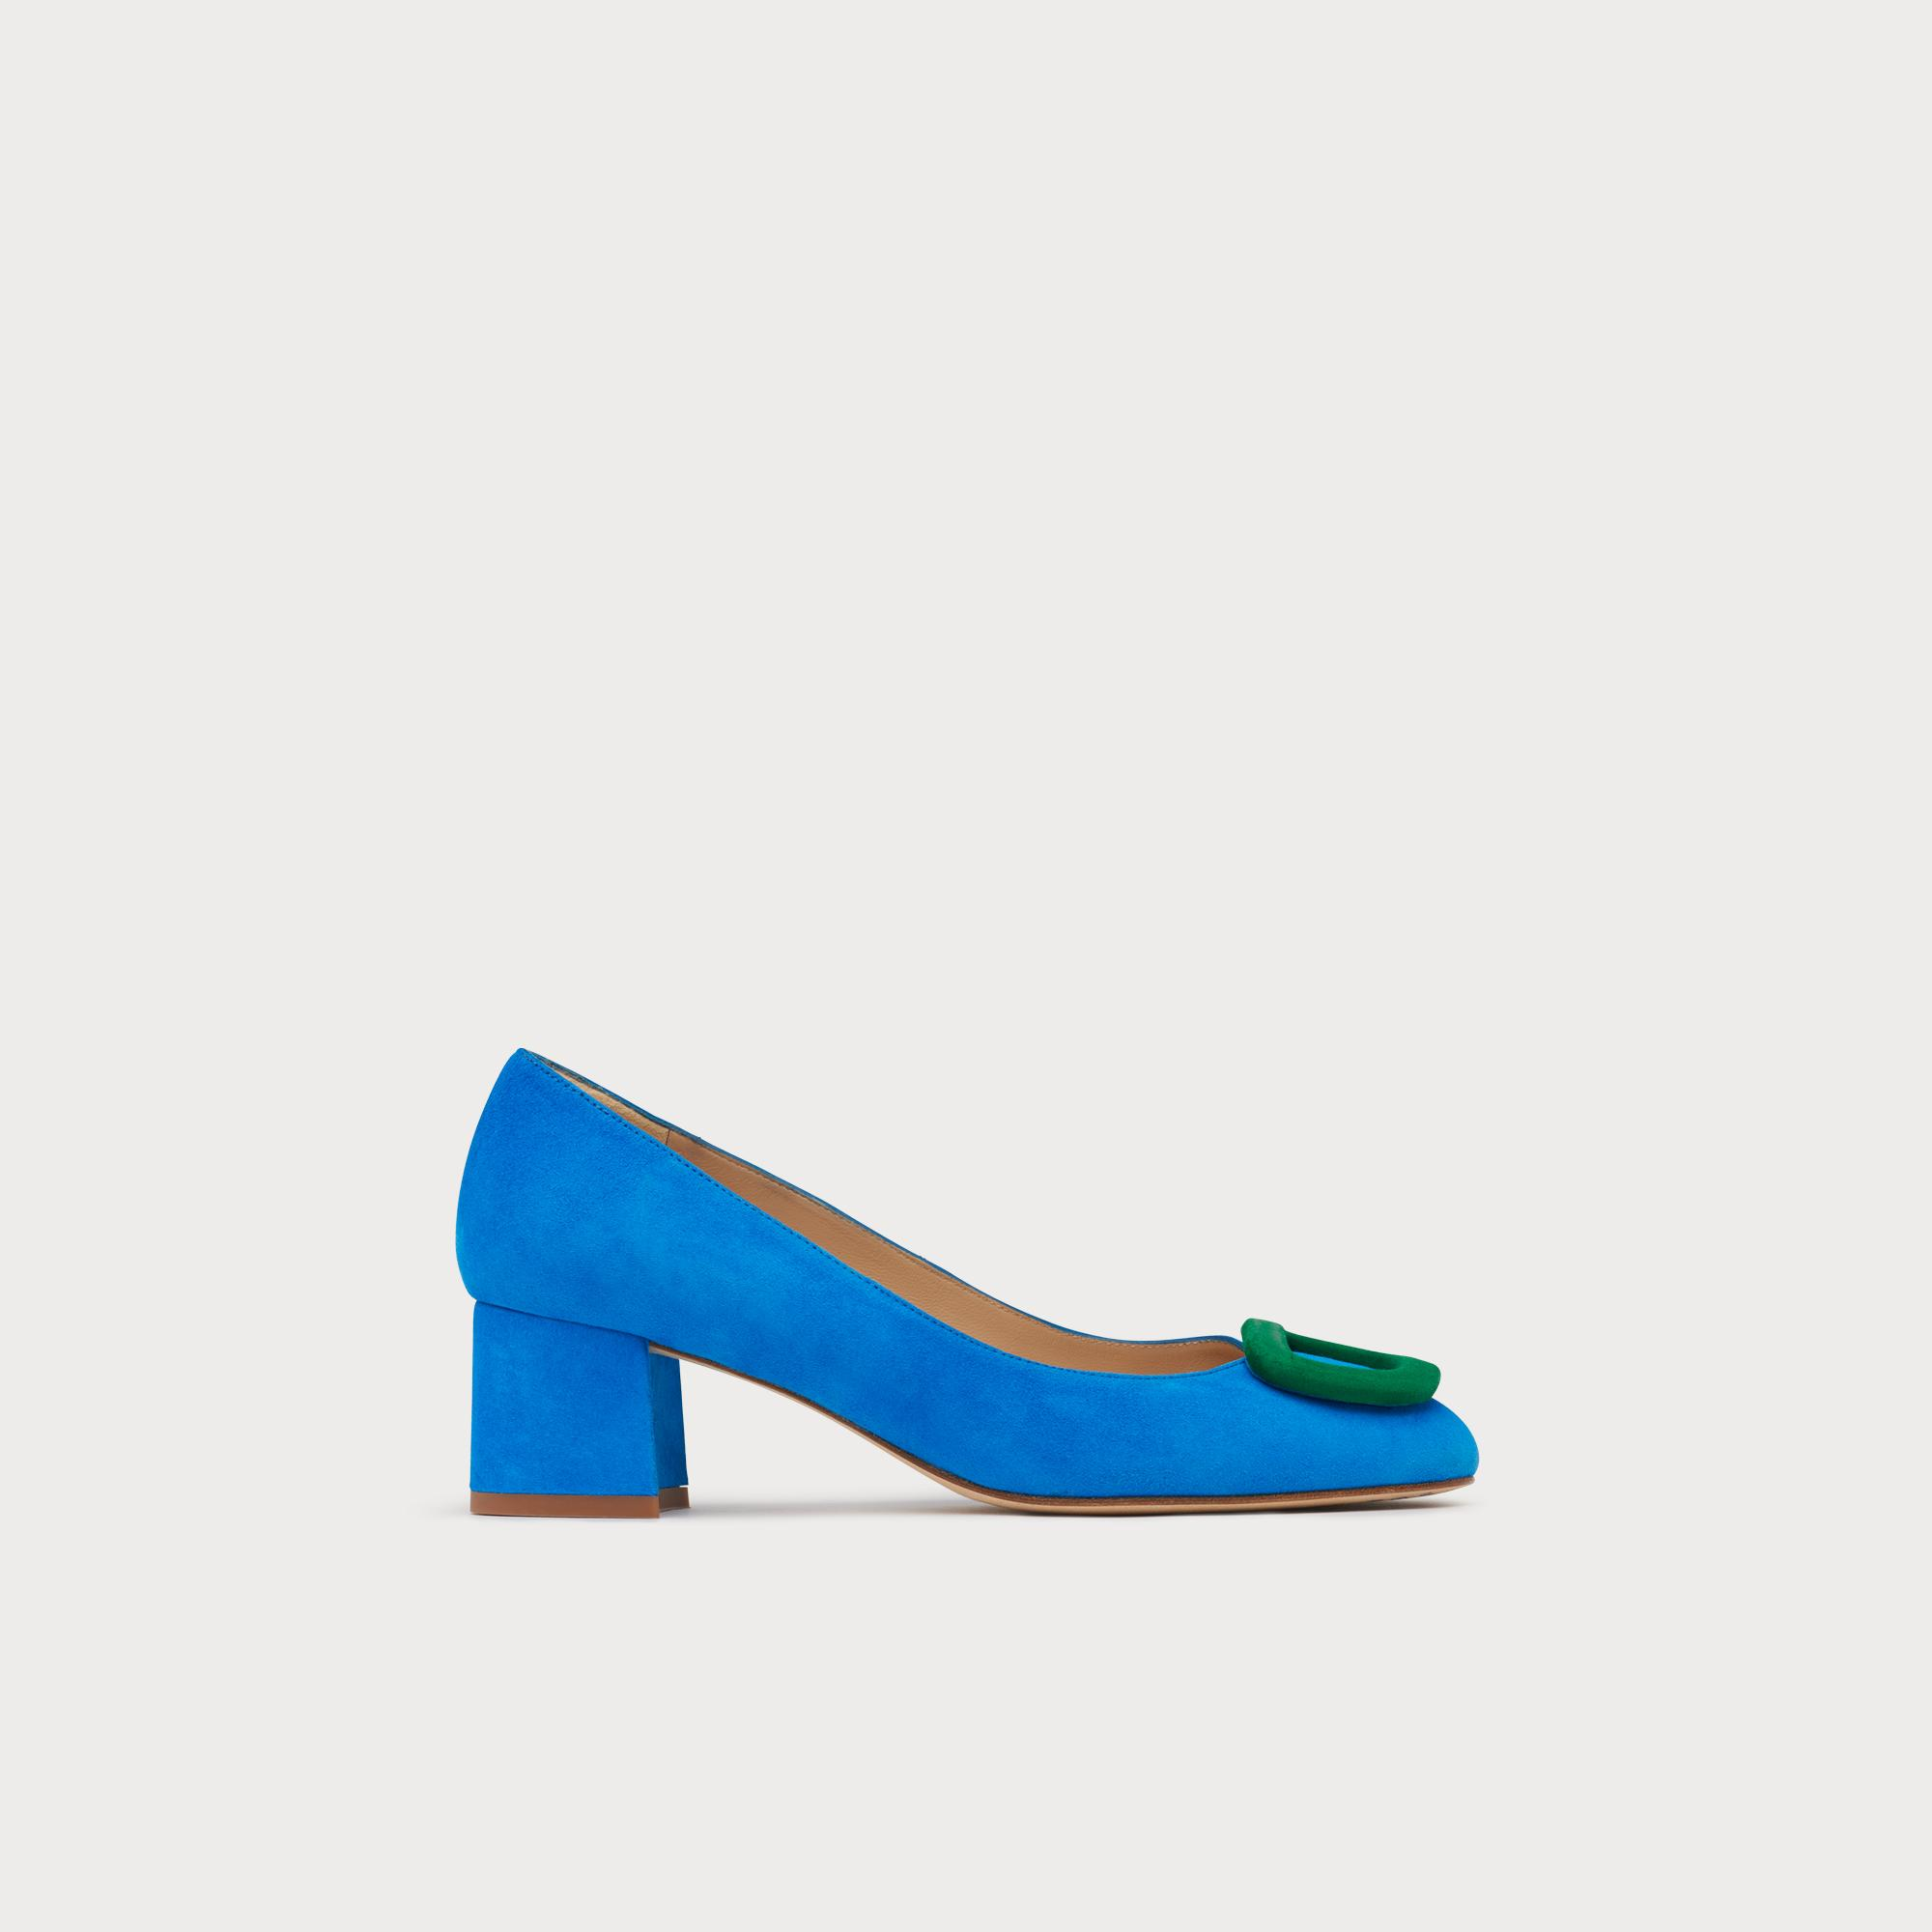 906f265294e Larissa Green Suede Kitten Heel Slingbacks. £195.00. BUY AT L.K.BENNETT ·  Nimah Blue Suede Buckle Courts by L.K.Bennett